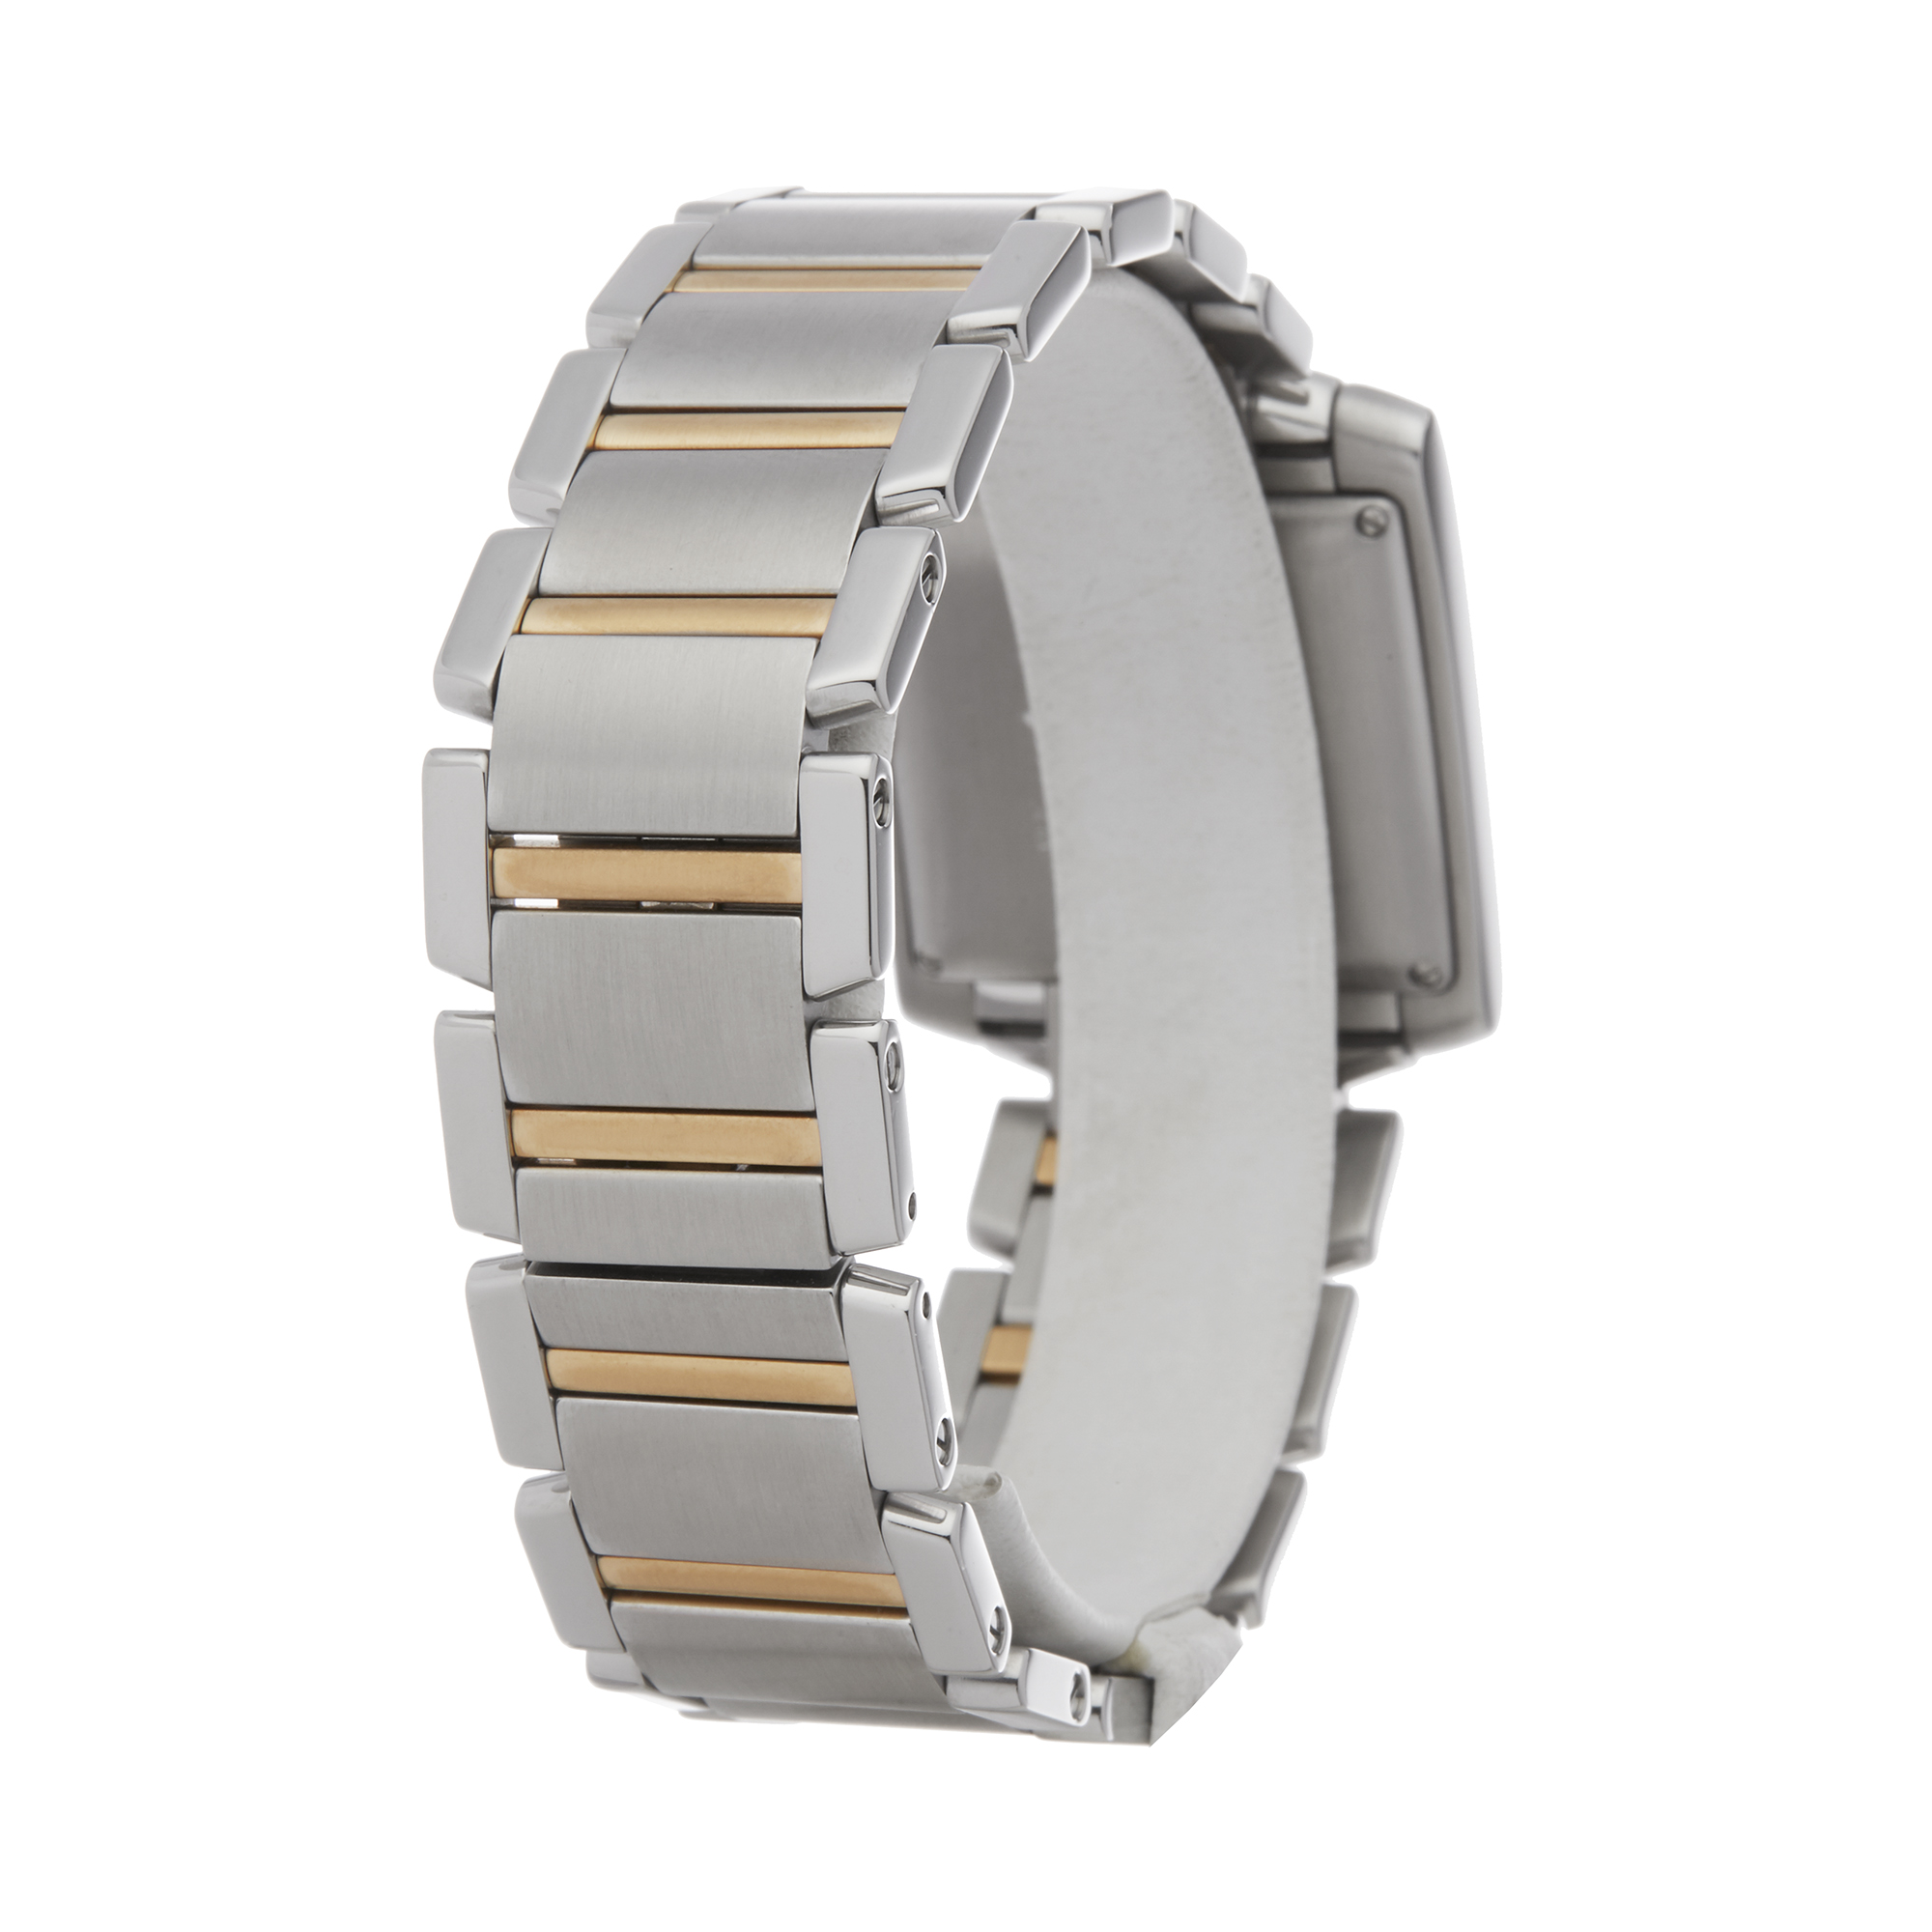 Cartier Tank Francaise 2302 Unisex Stainless Steel Watch - Image 5 of 8